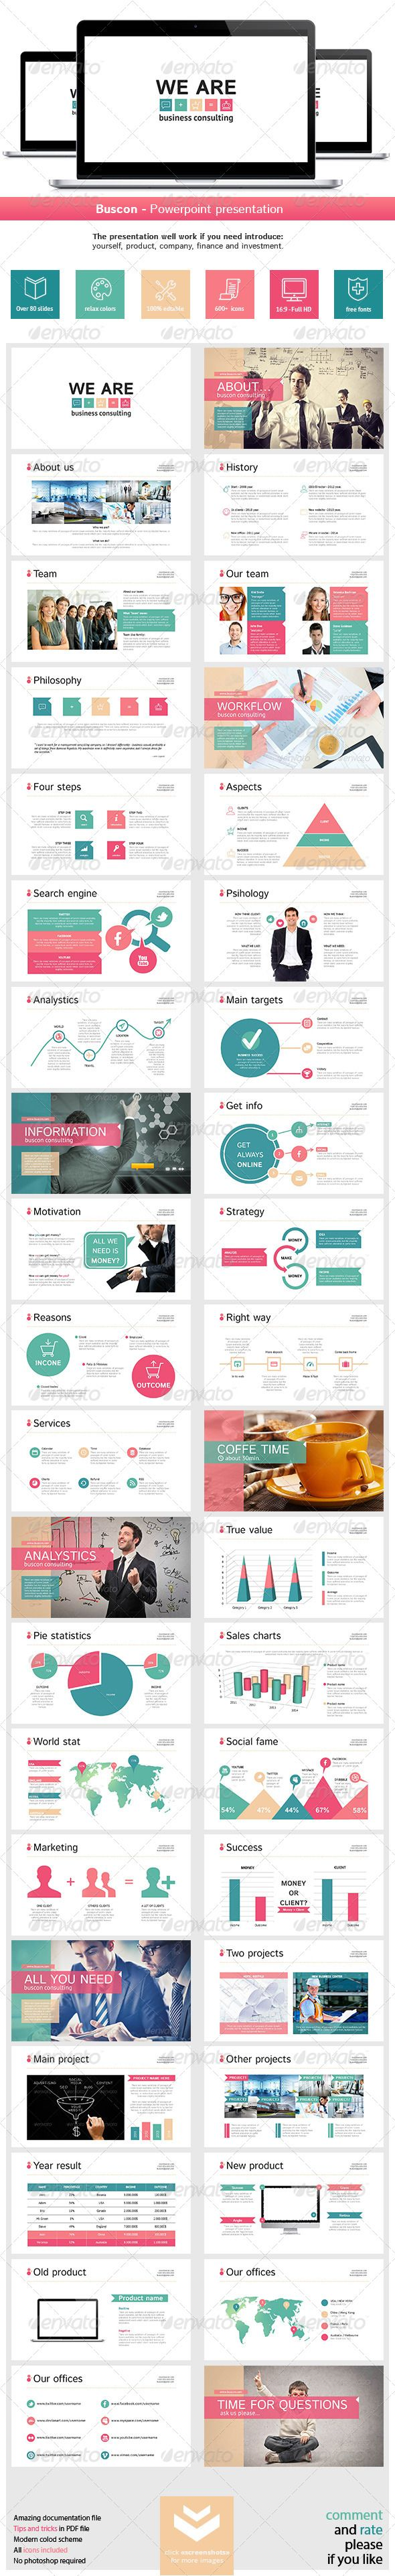 Buscon Powerpoint Presentation - Business Powerpoint Templates.